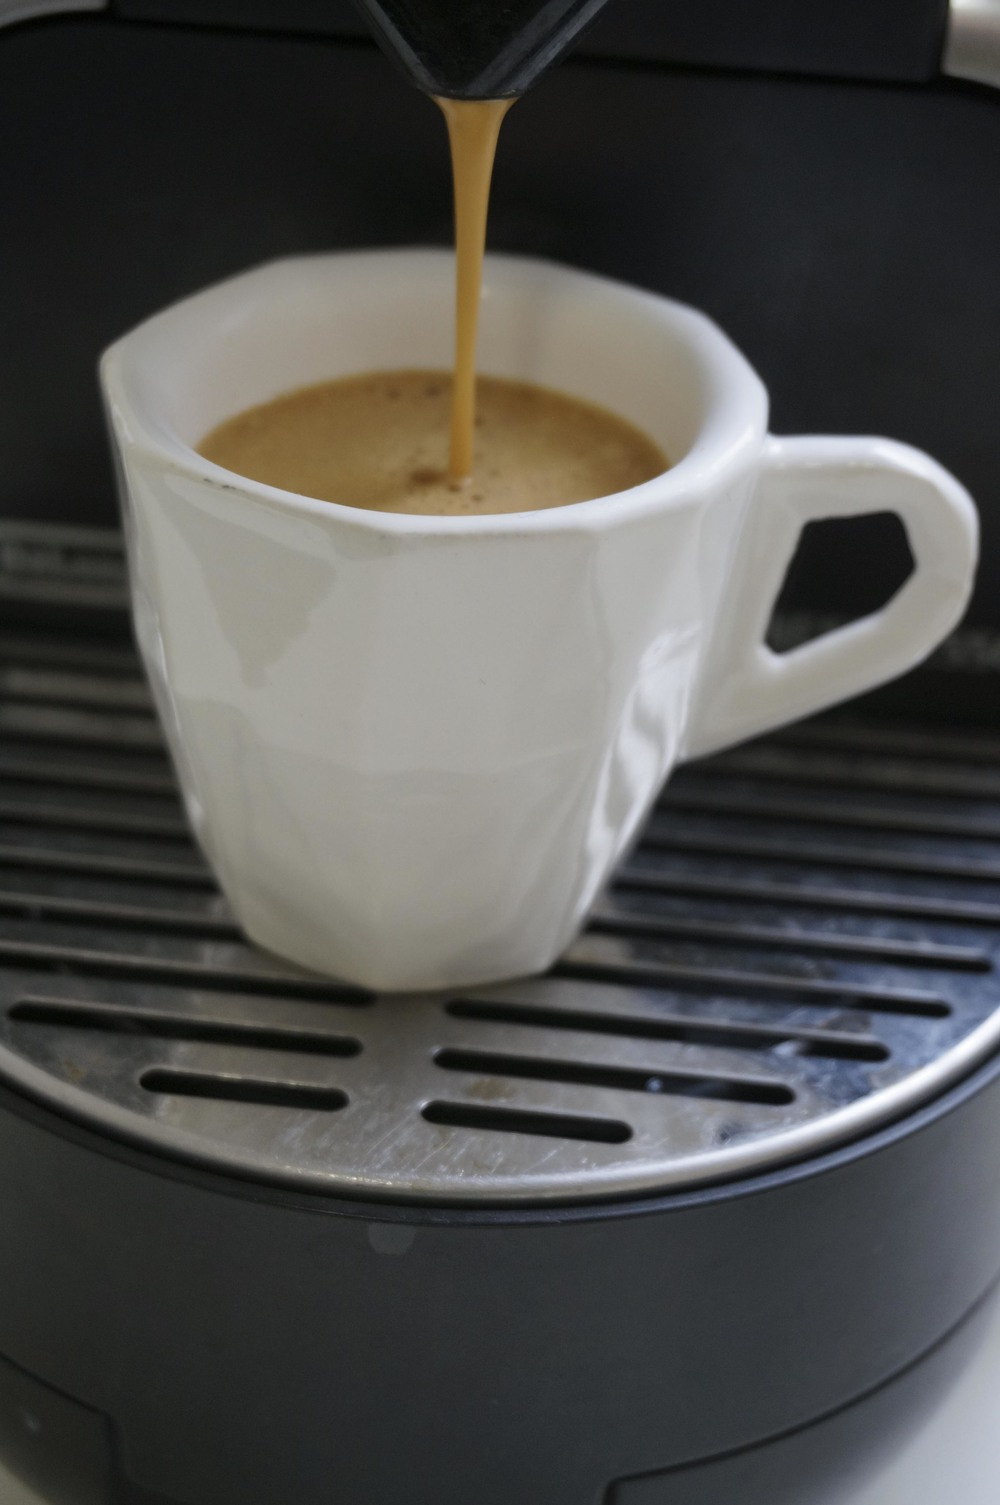 Low Resolution Cup - Espresso size = 60mm 2.35in tall.Material: Bright white glazed ceramic with a glossy, smooth finish. Food-safe.Smooth and rounded inside wall for easy cleaning.